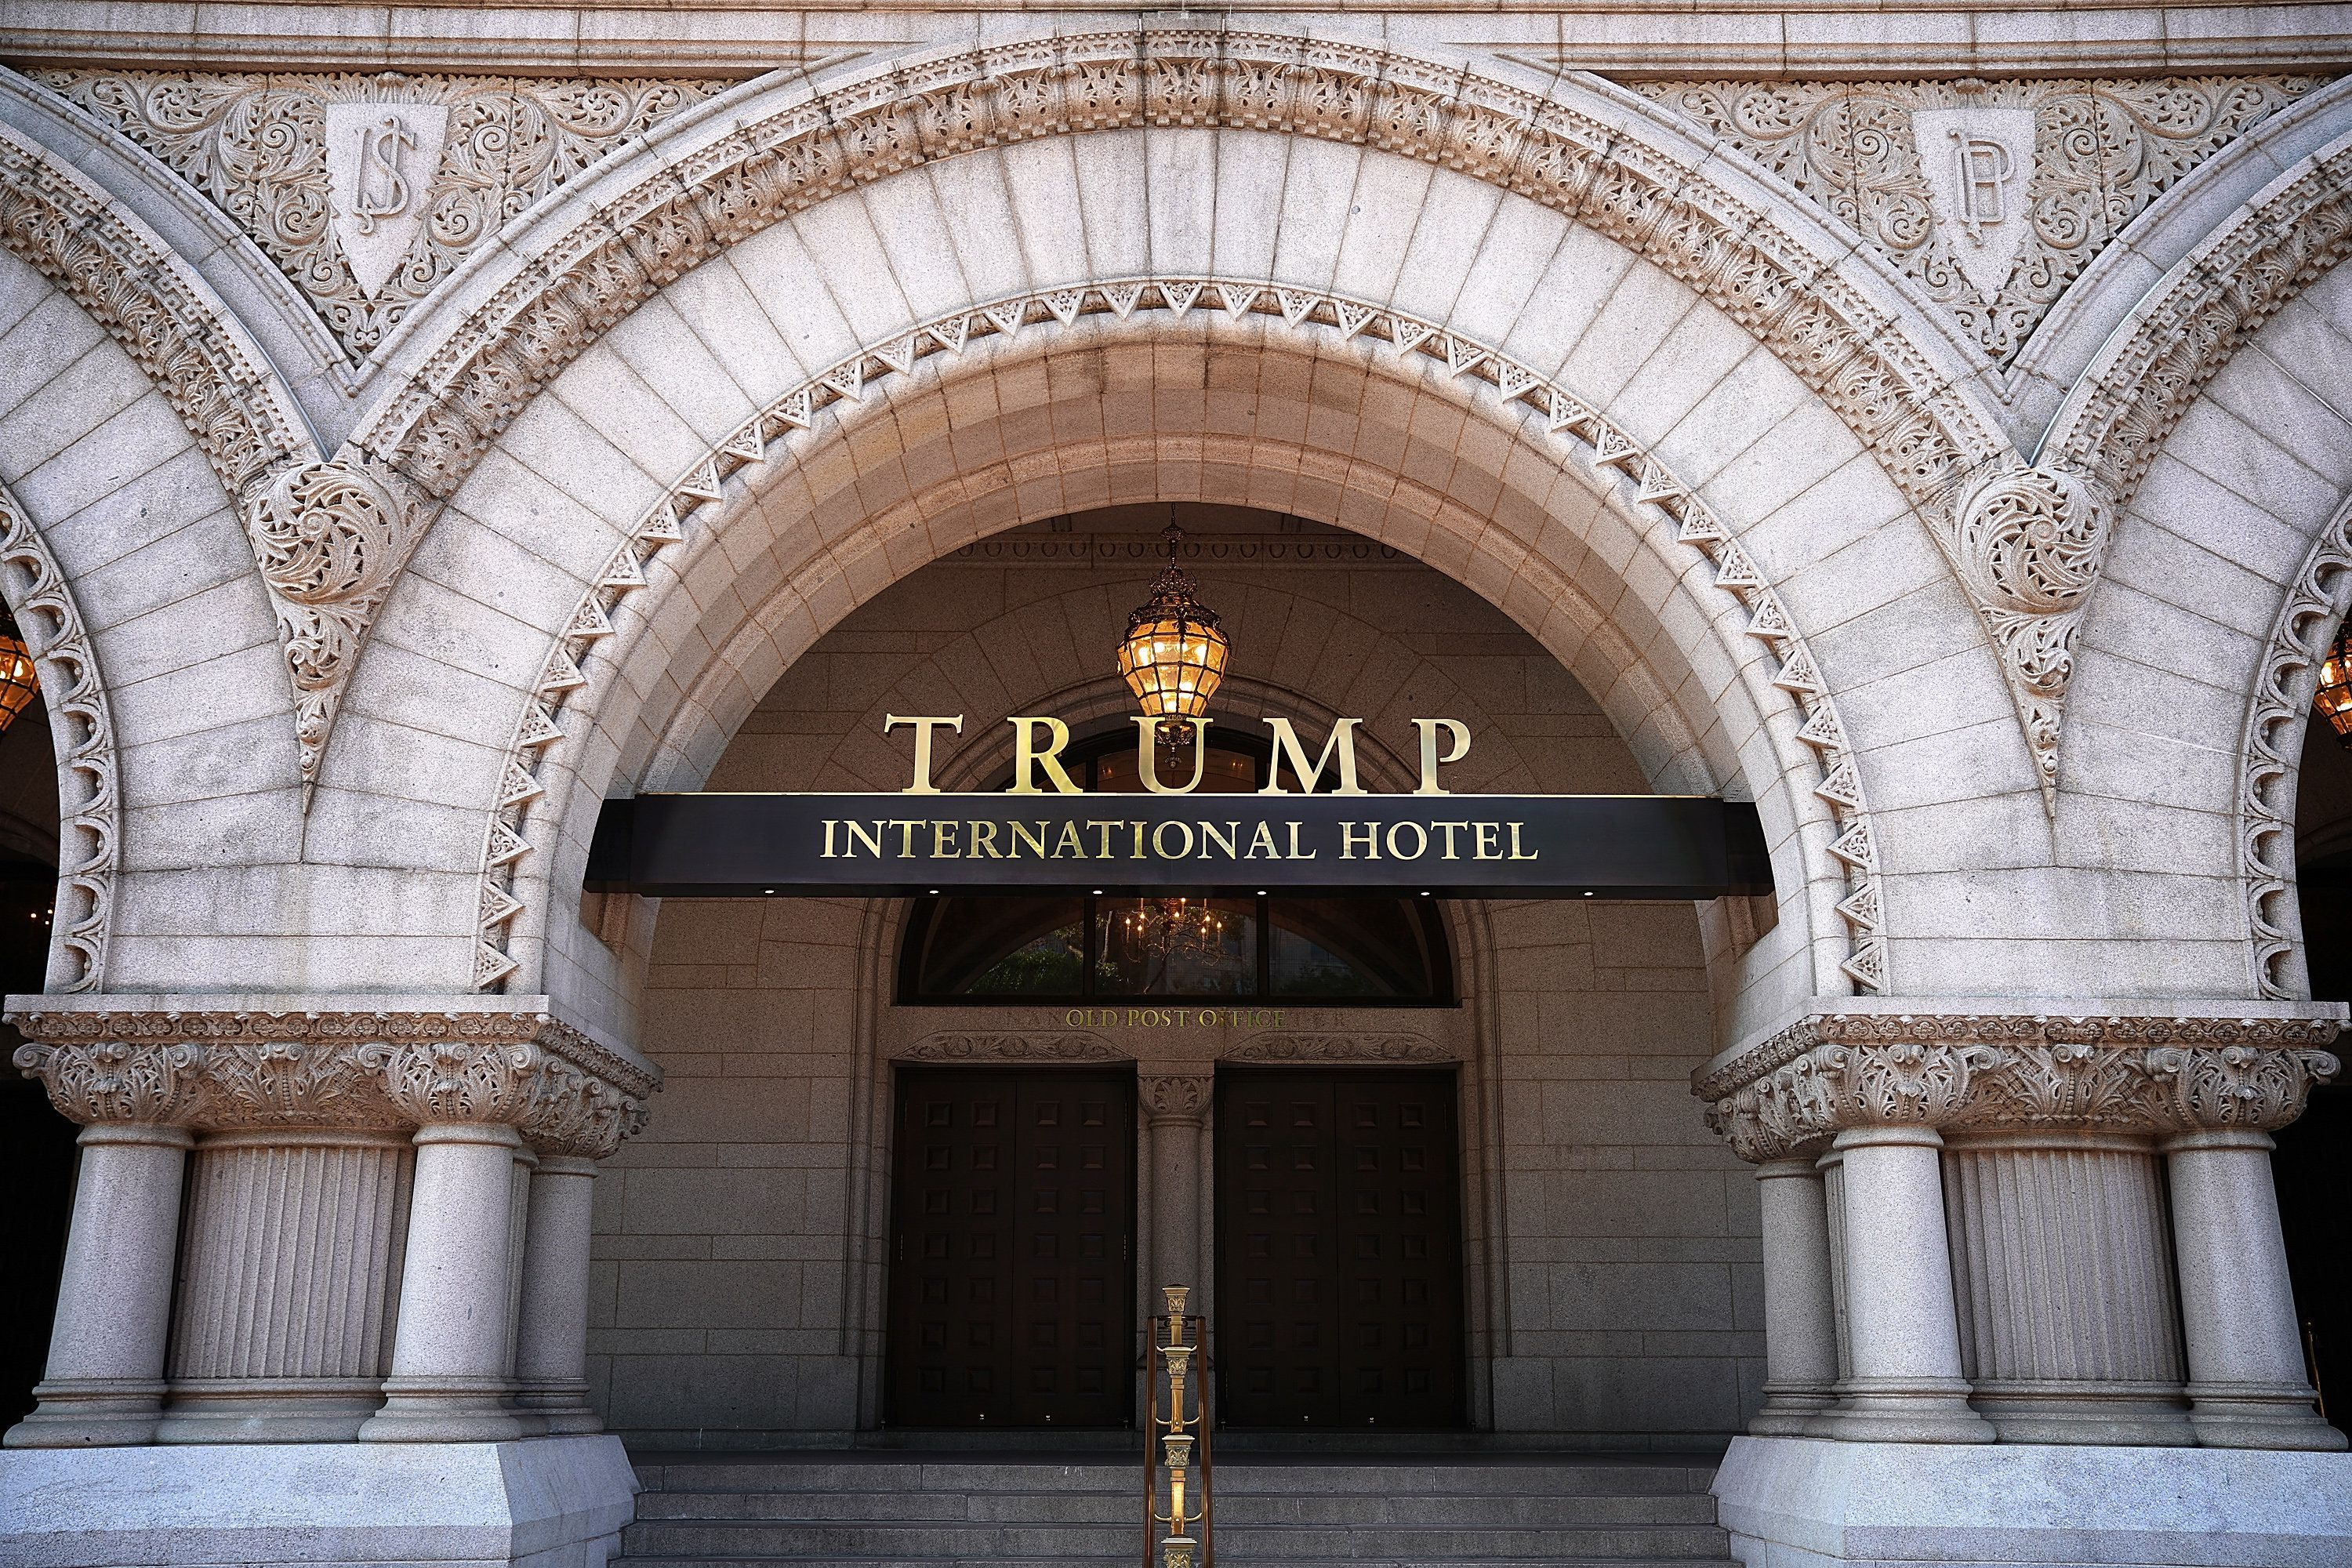 The Trump International Hotel, located blocks from the White House, has become both a tourist attraction in the nation's